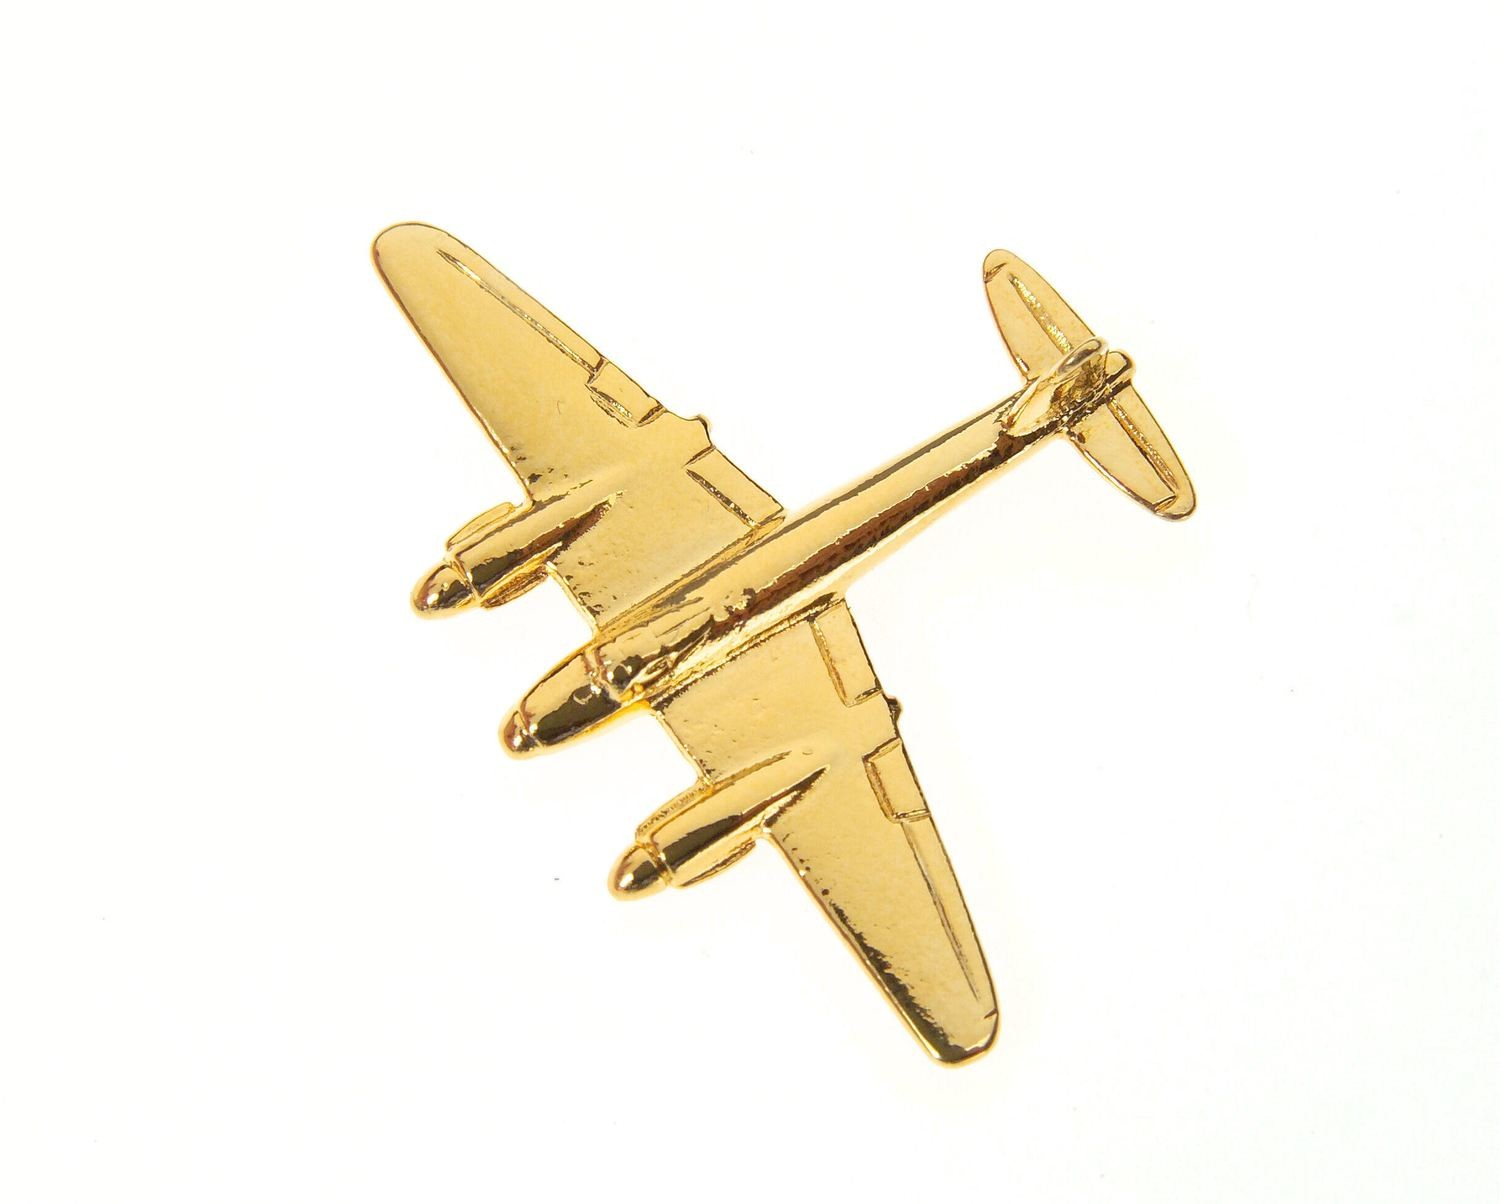 Mosquito 'Wooden Wonder' Gold Plated Tie / Lapel Pin